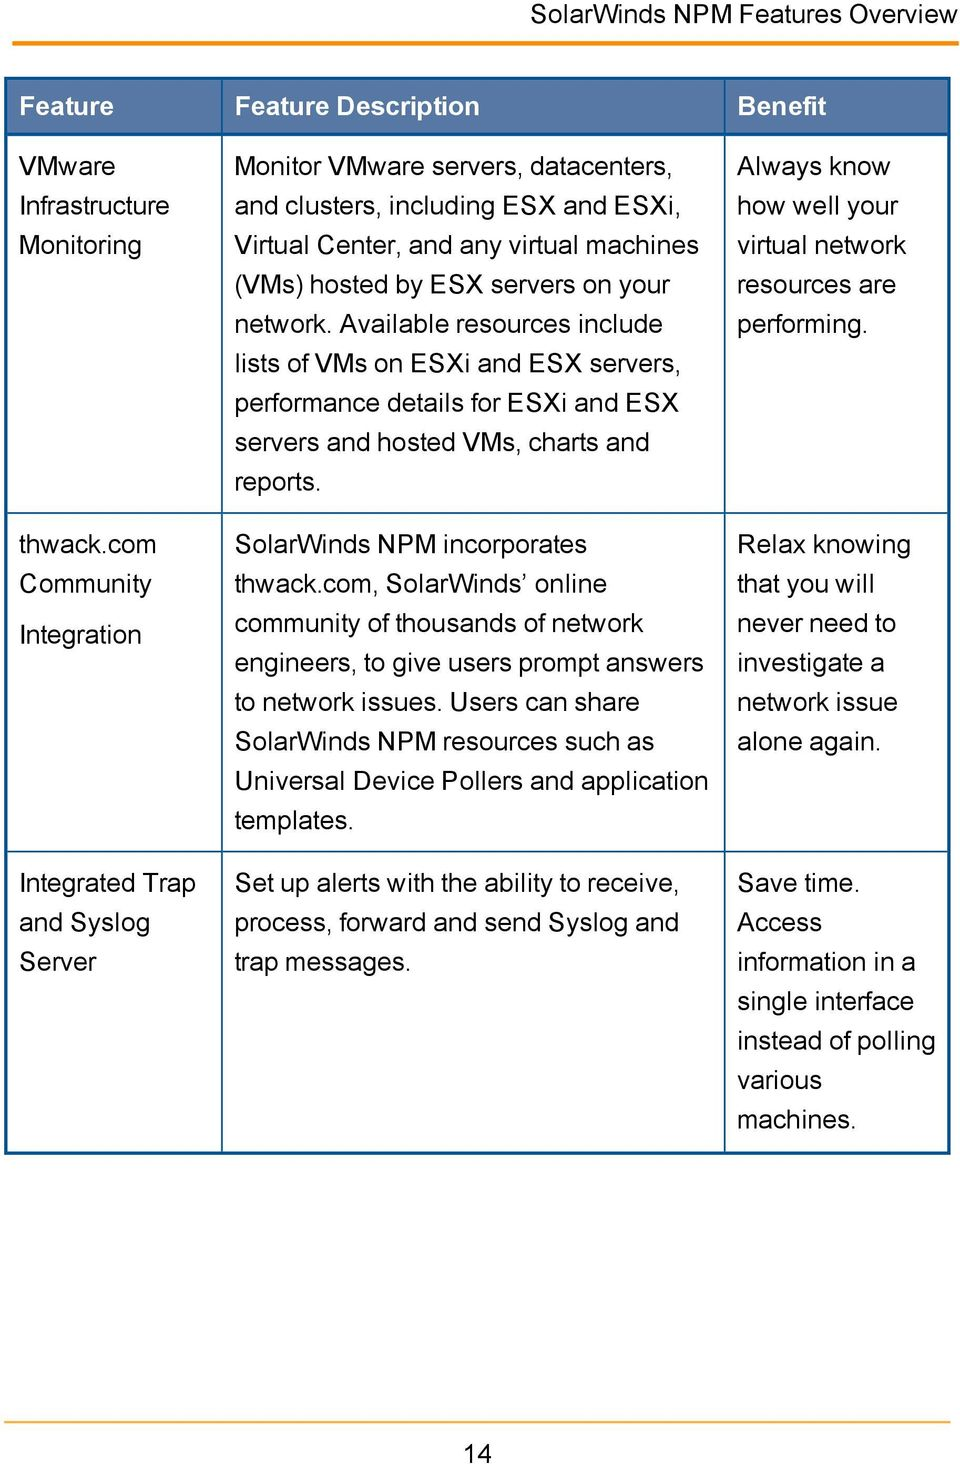 servers on your network. Available resources include lists of VMs on ESXi and ESX servers, performance details for ESXi and ESX servers and hosted VMs, charts and reports.